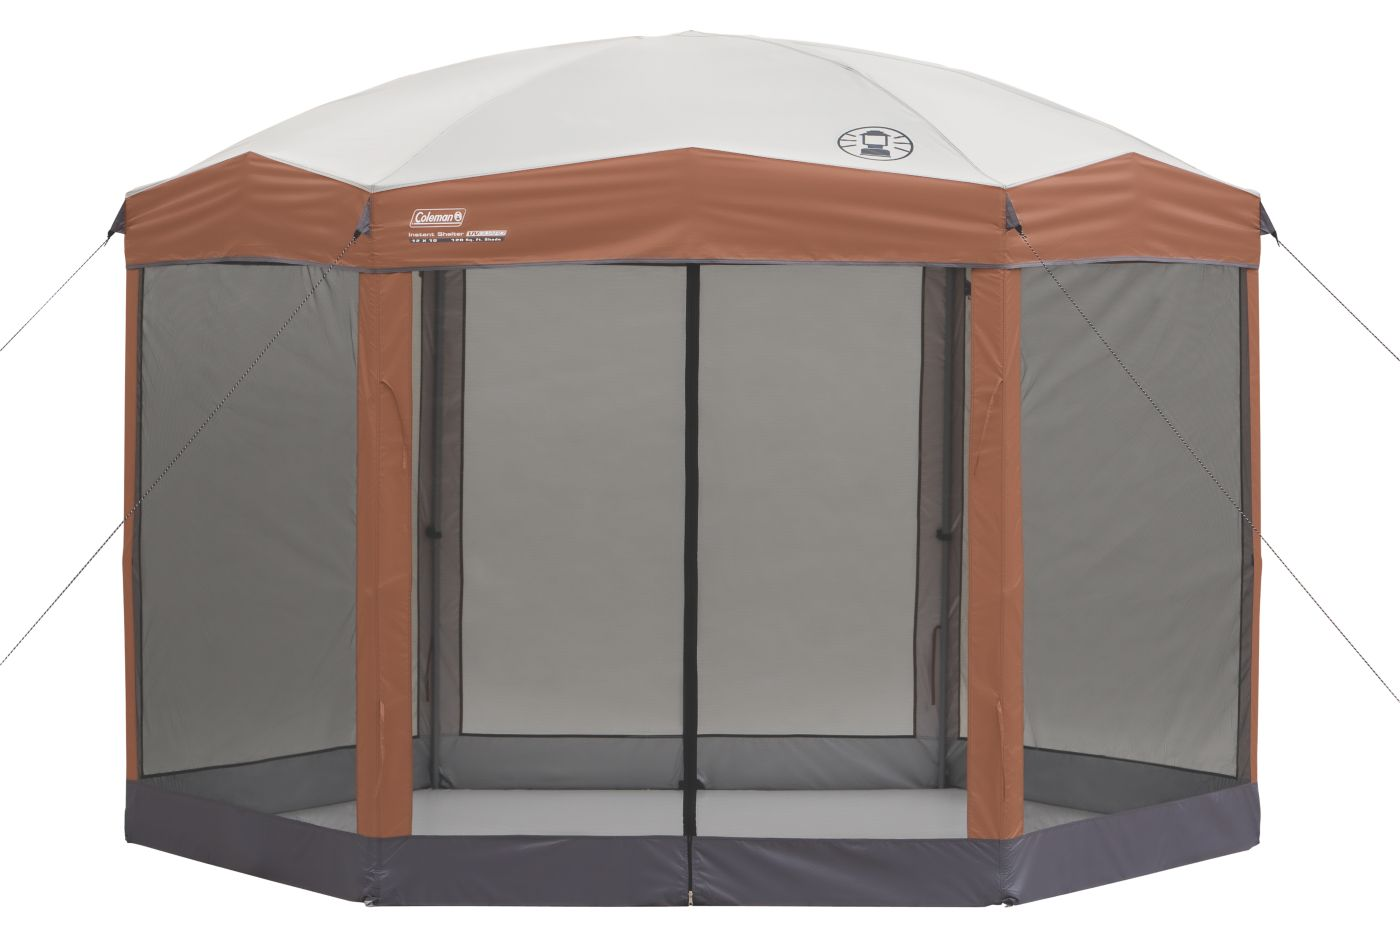 Back Home™ 12 x 10 Instant Screenhouse  sc 1 st  Coleman & Coleman Canopies | Shade Tents | Coleman